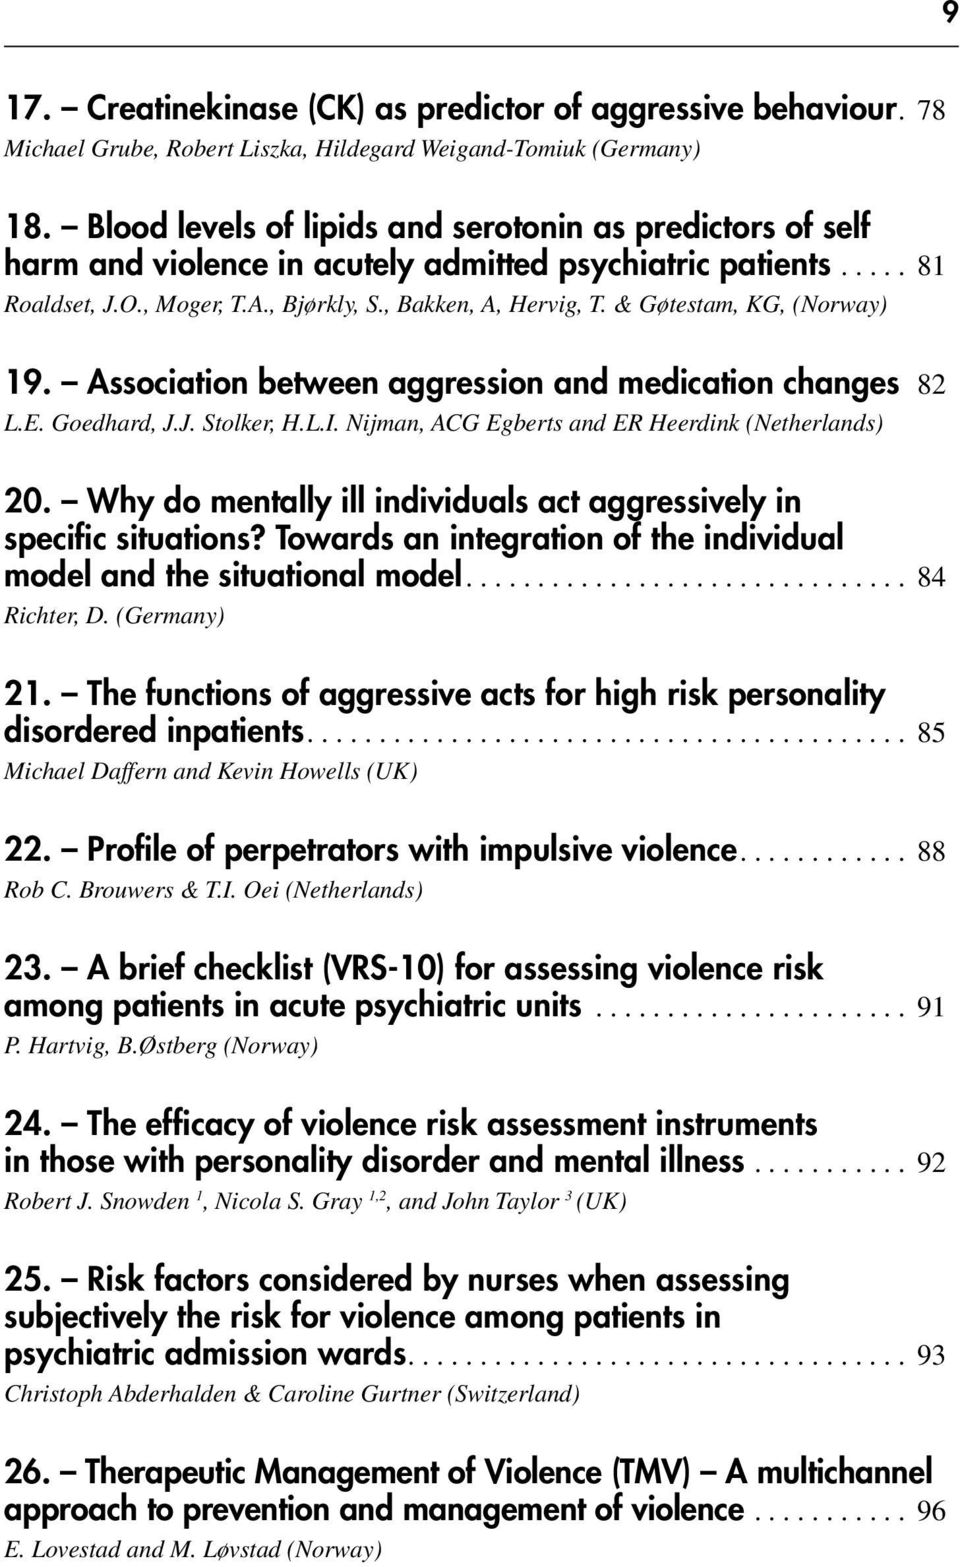 & Gøtestam, KG, (Norway) 19. Association between aggression and medication changes. 82 L.E. Goedhard, J.J. Stolker, H.L.I. Nijman, ACG Egberts and ER Heerdink (Netherlands) 20.